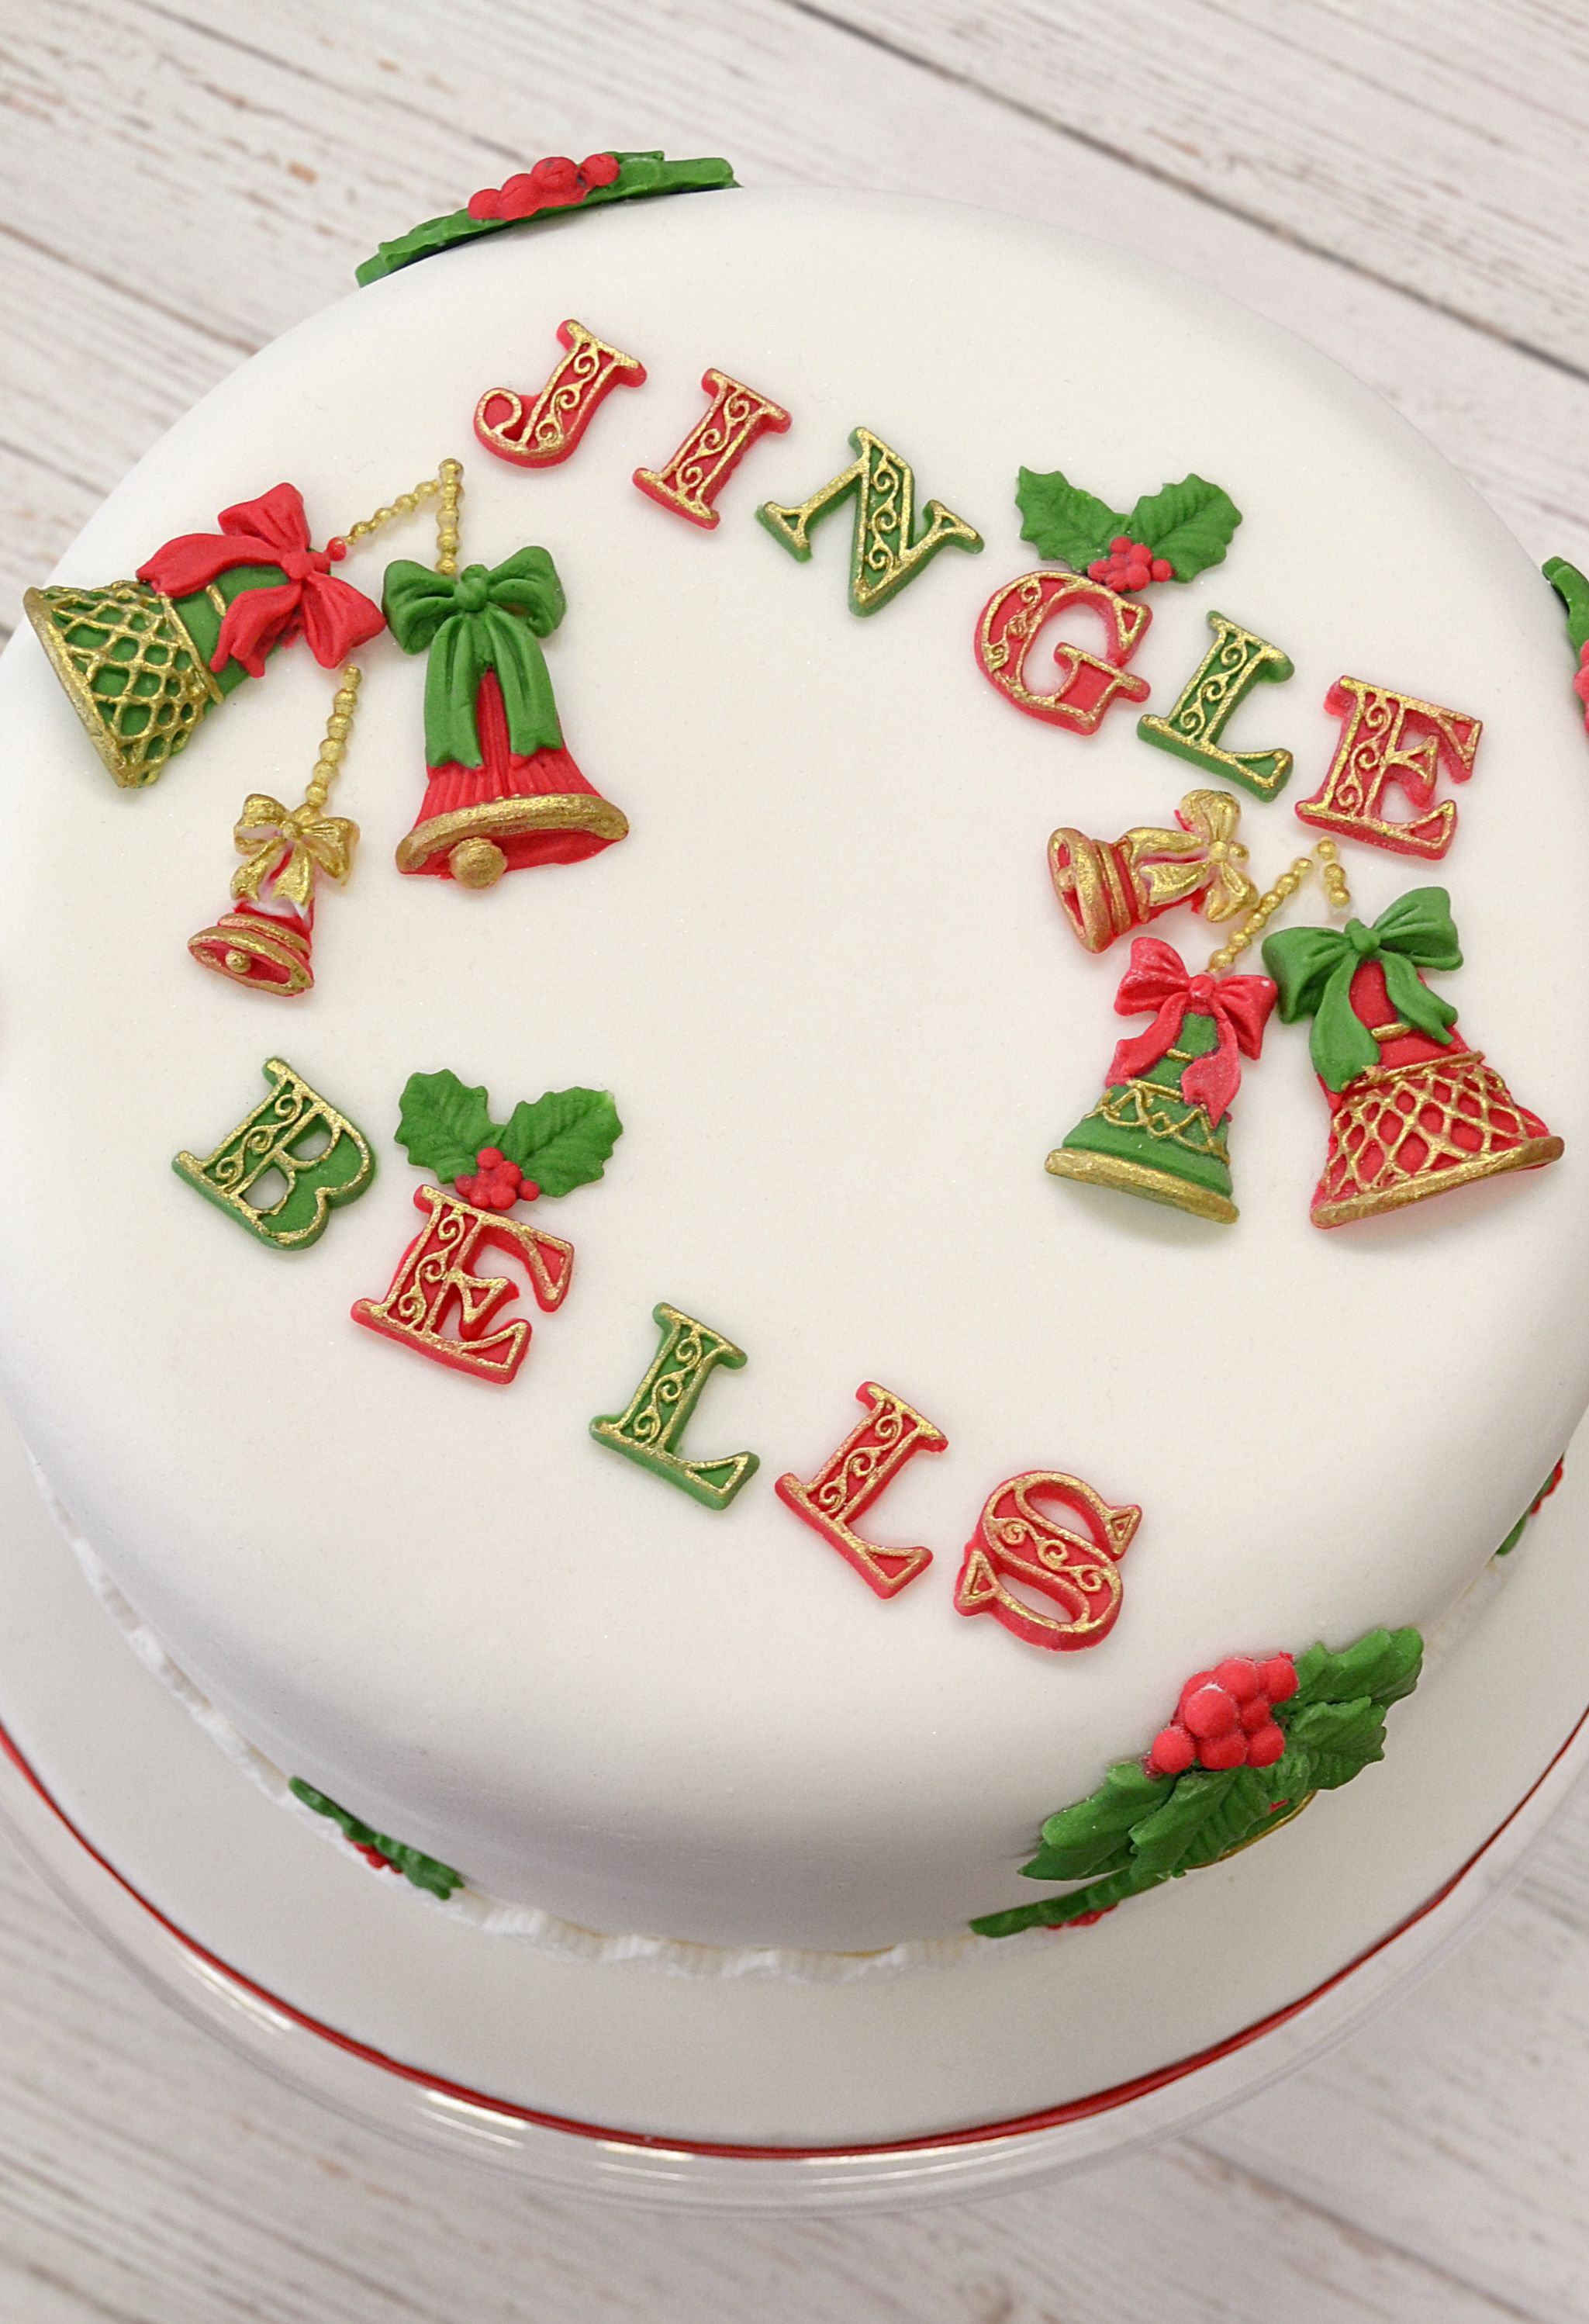 Jingle Bells Christmas Cake Made Using The Katysuedesigns Festive